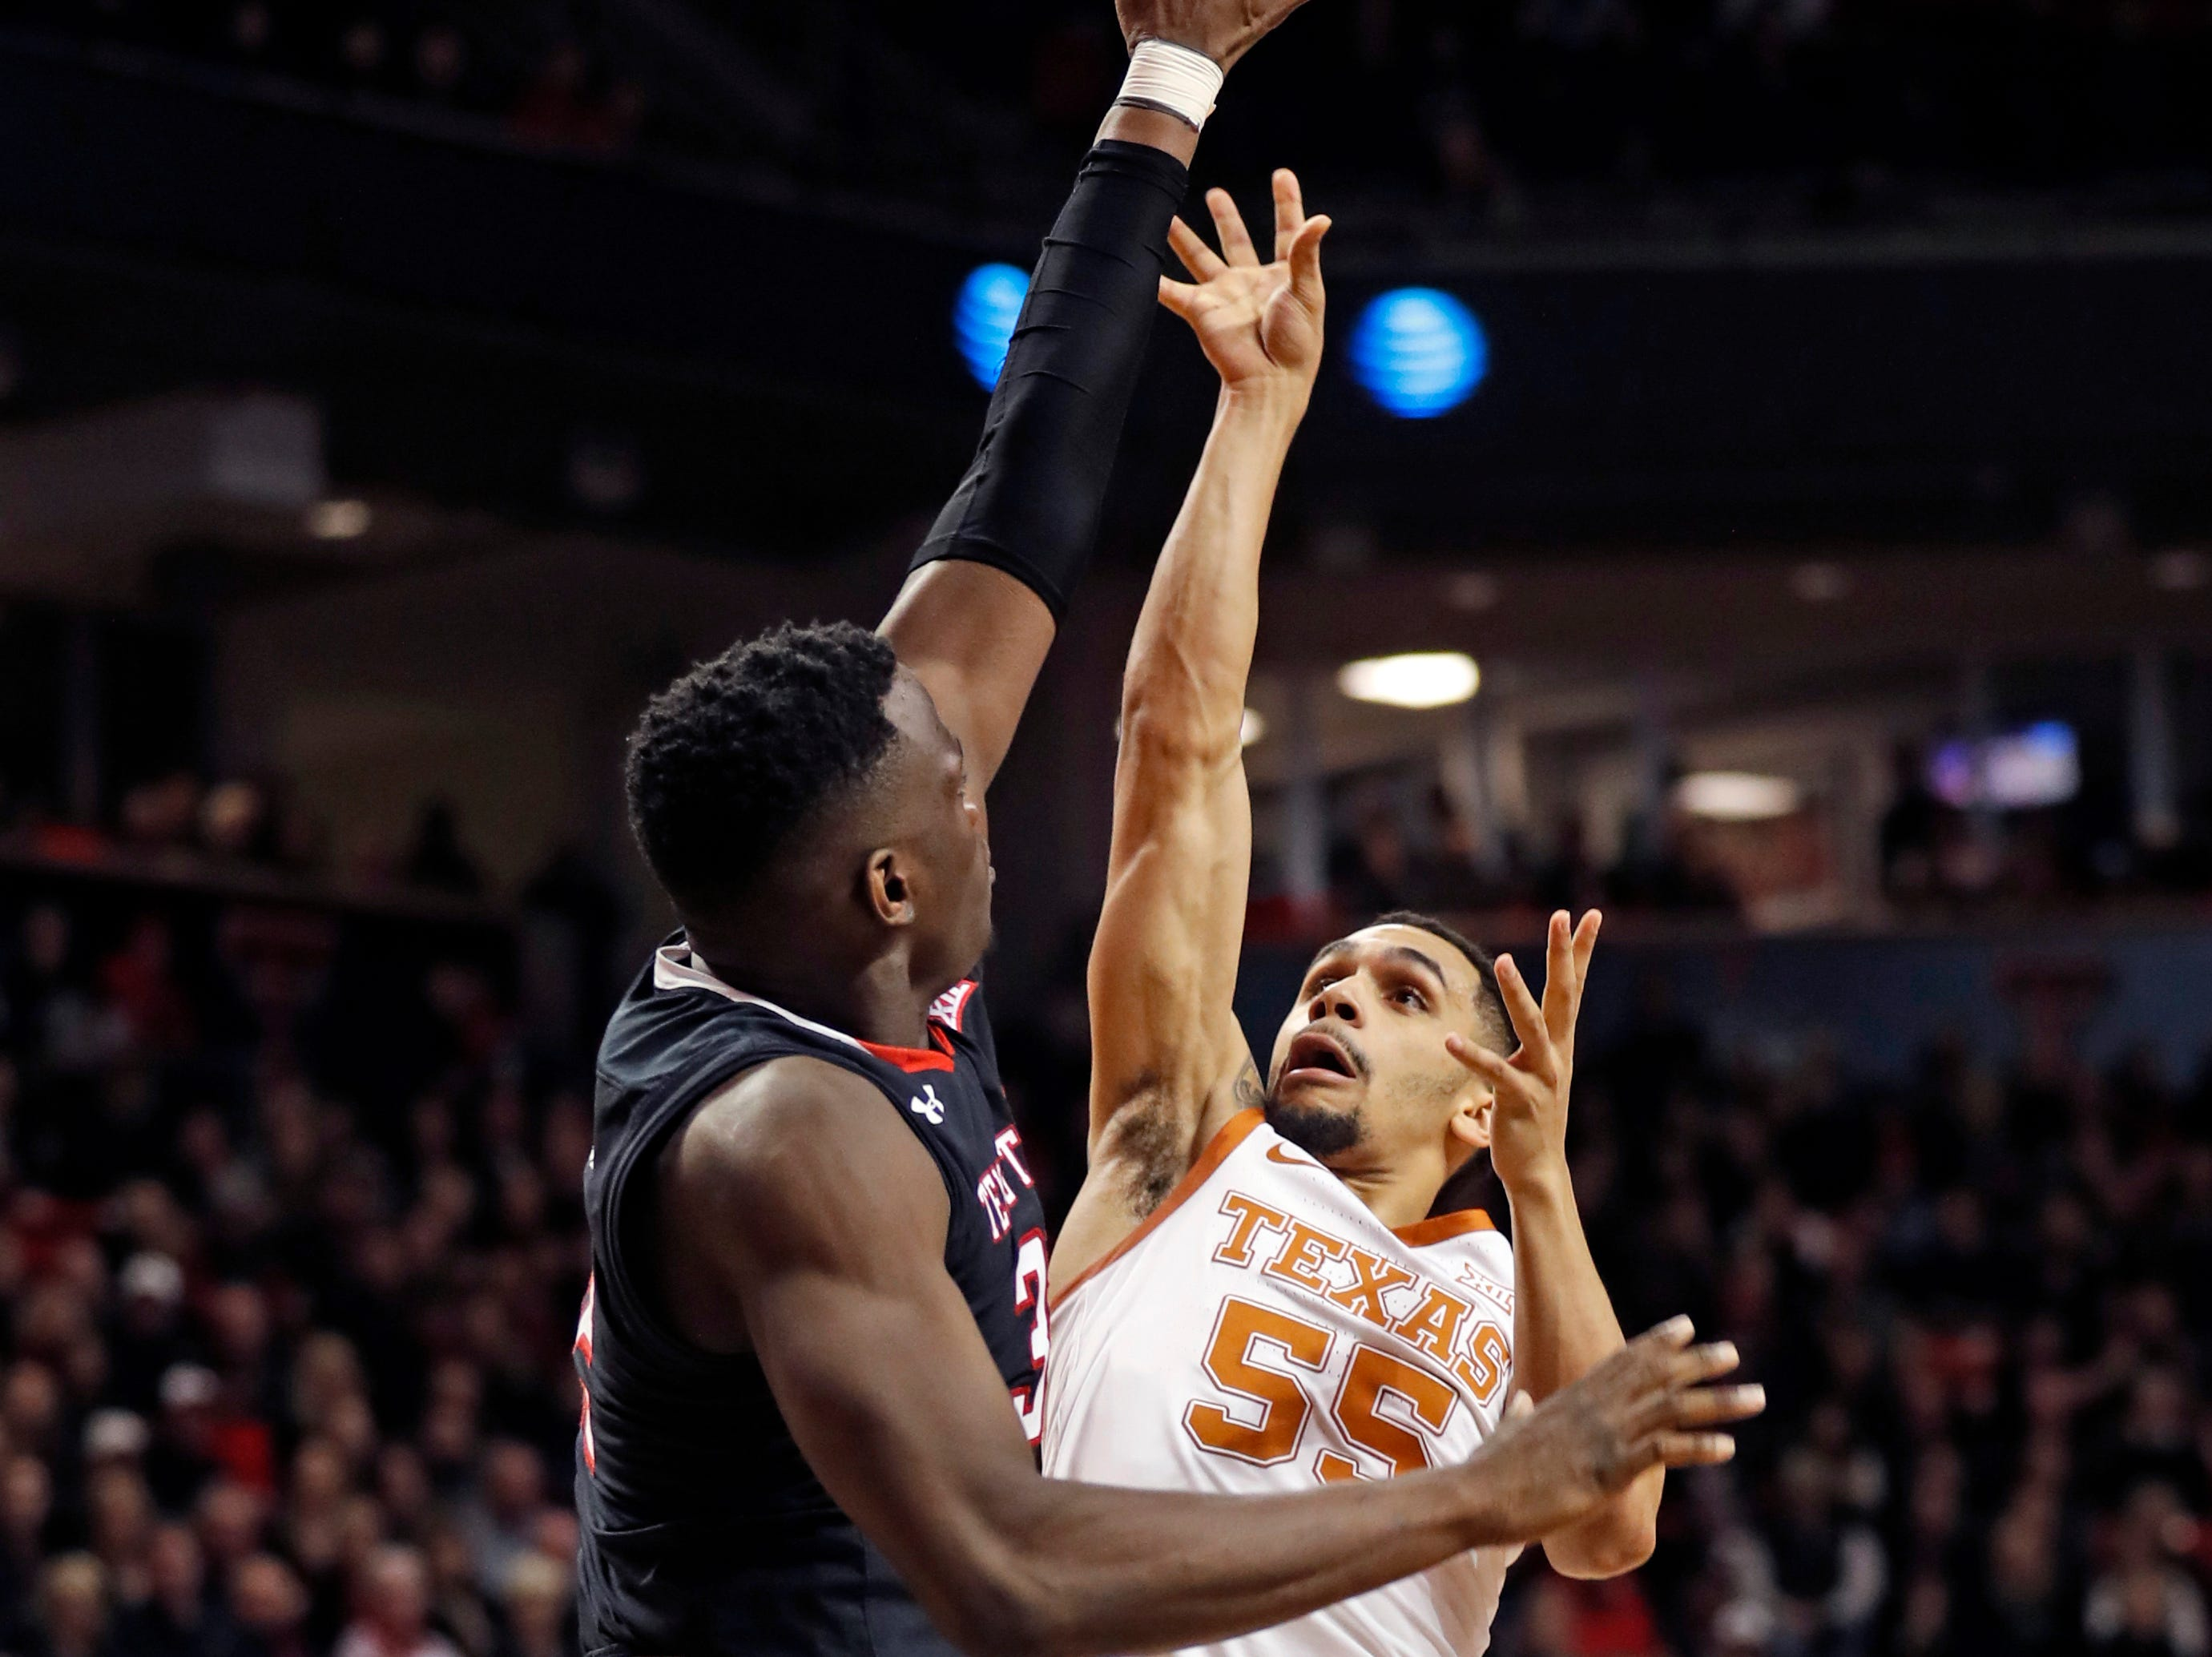 Texas Tech's Norense Odiase (32) tries to block the shot by Texas' Elijah Mitrou-Long (55) during the second half of an NCAA college basketball game, Monday, March 4, 2019, in Lubbock, Texas. (AP Photo/Brad Tollefson)